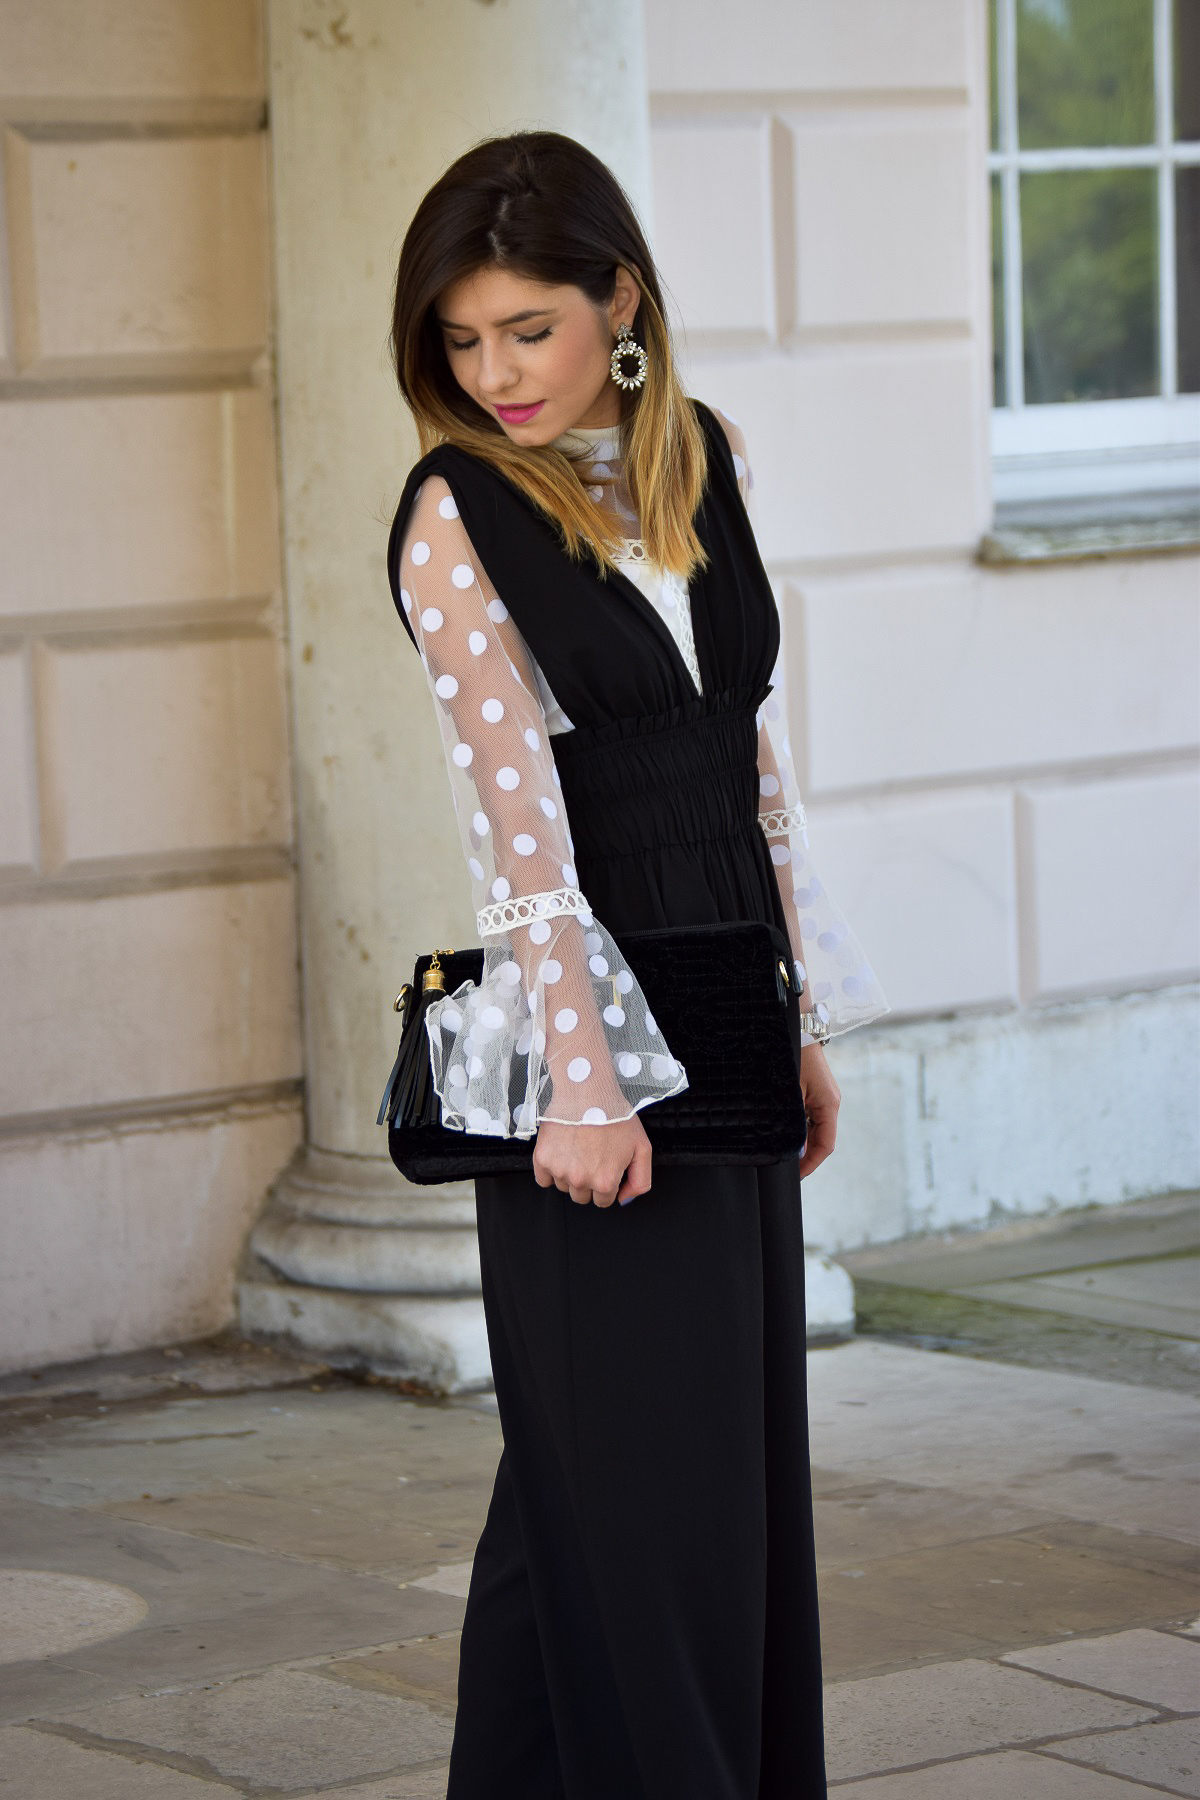 Monochrome Evening Outfit